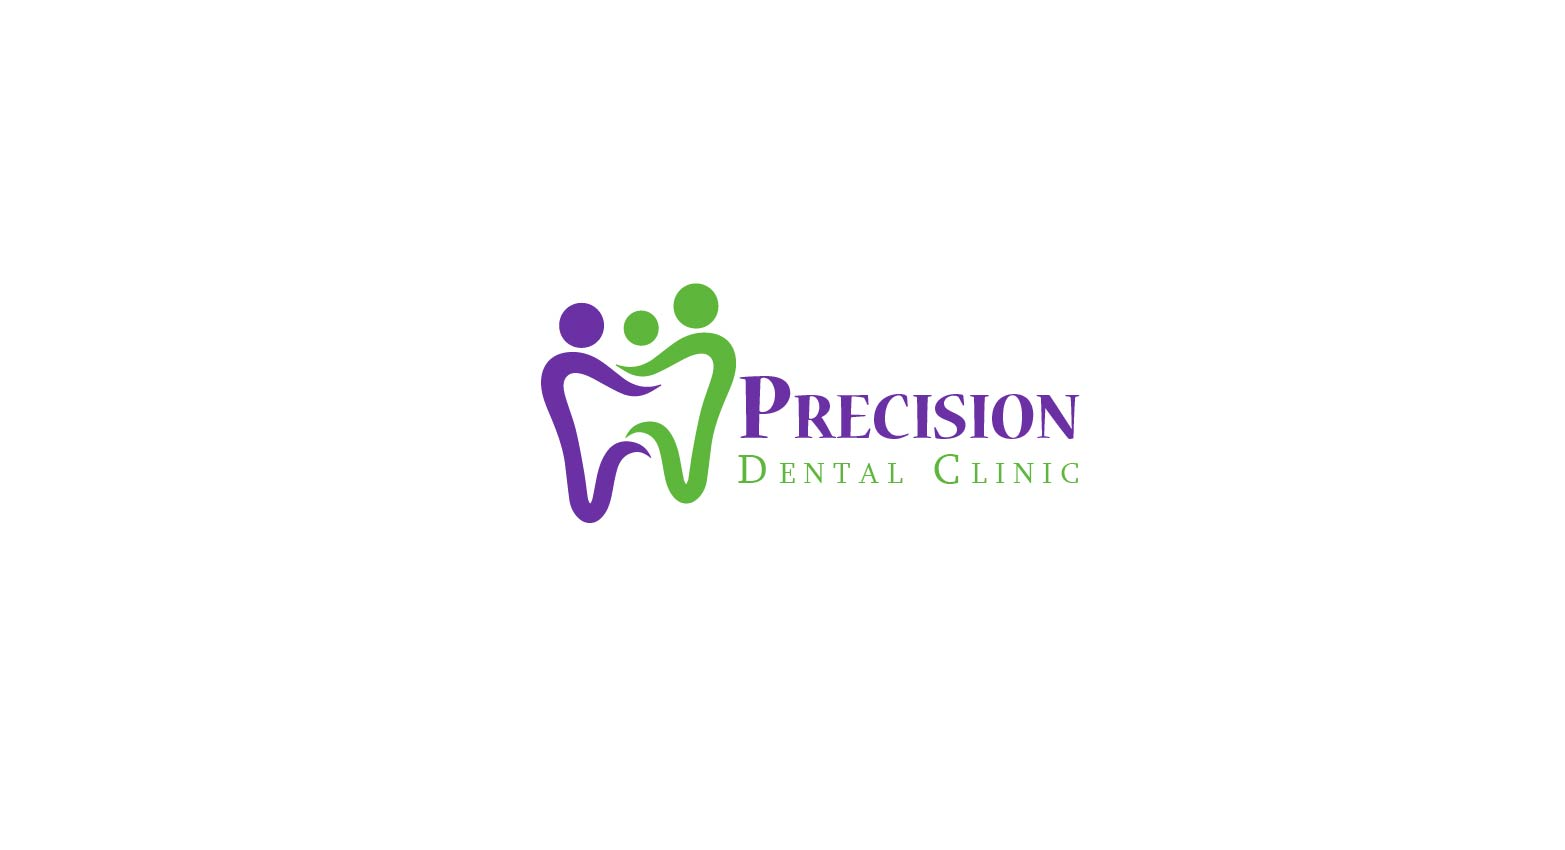 Logo Design by Muazzama Memon - Entry No. 162 in the Logo Design Contest Captivating Logo Design for Precision Dental Clinic.